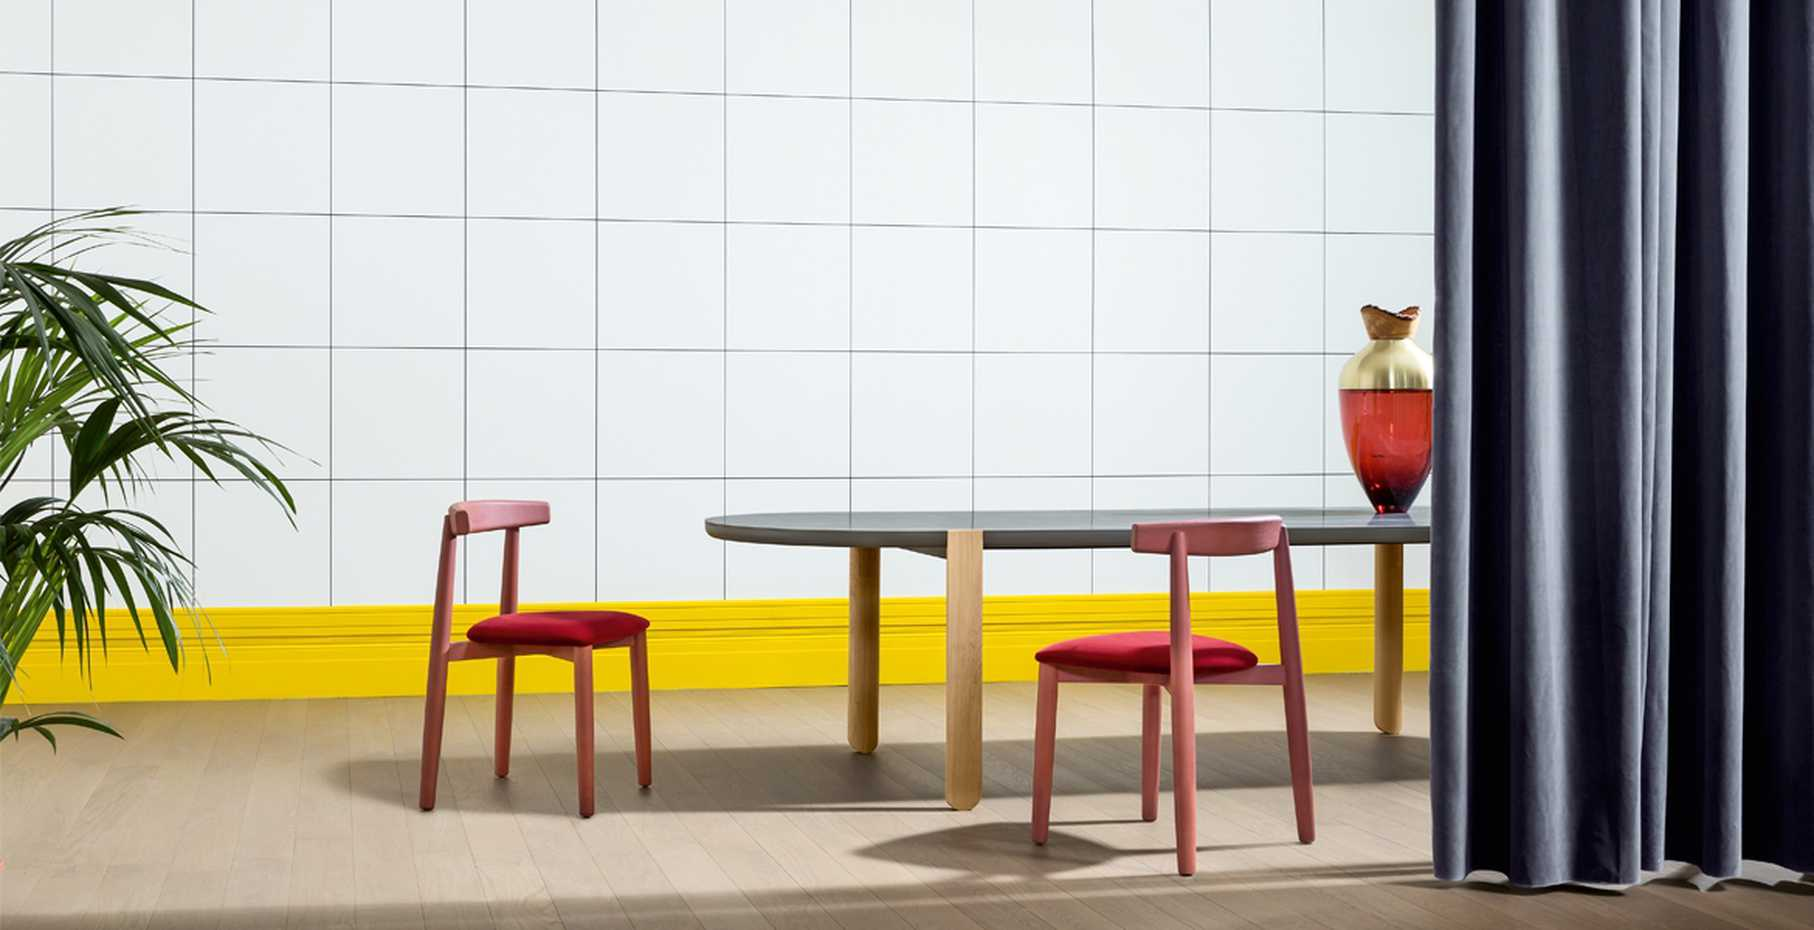 Claretta Bold by Miniforms product image 1